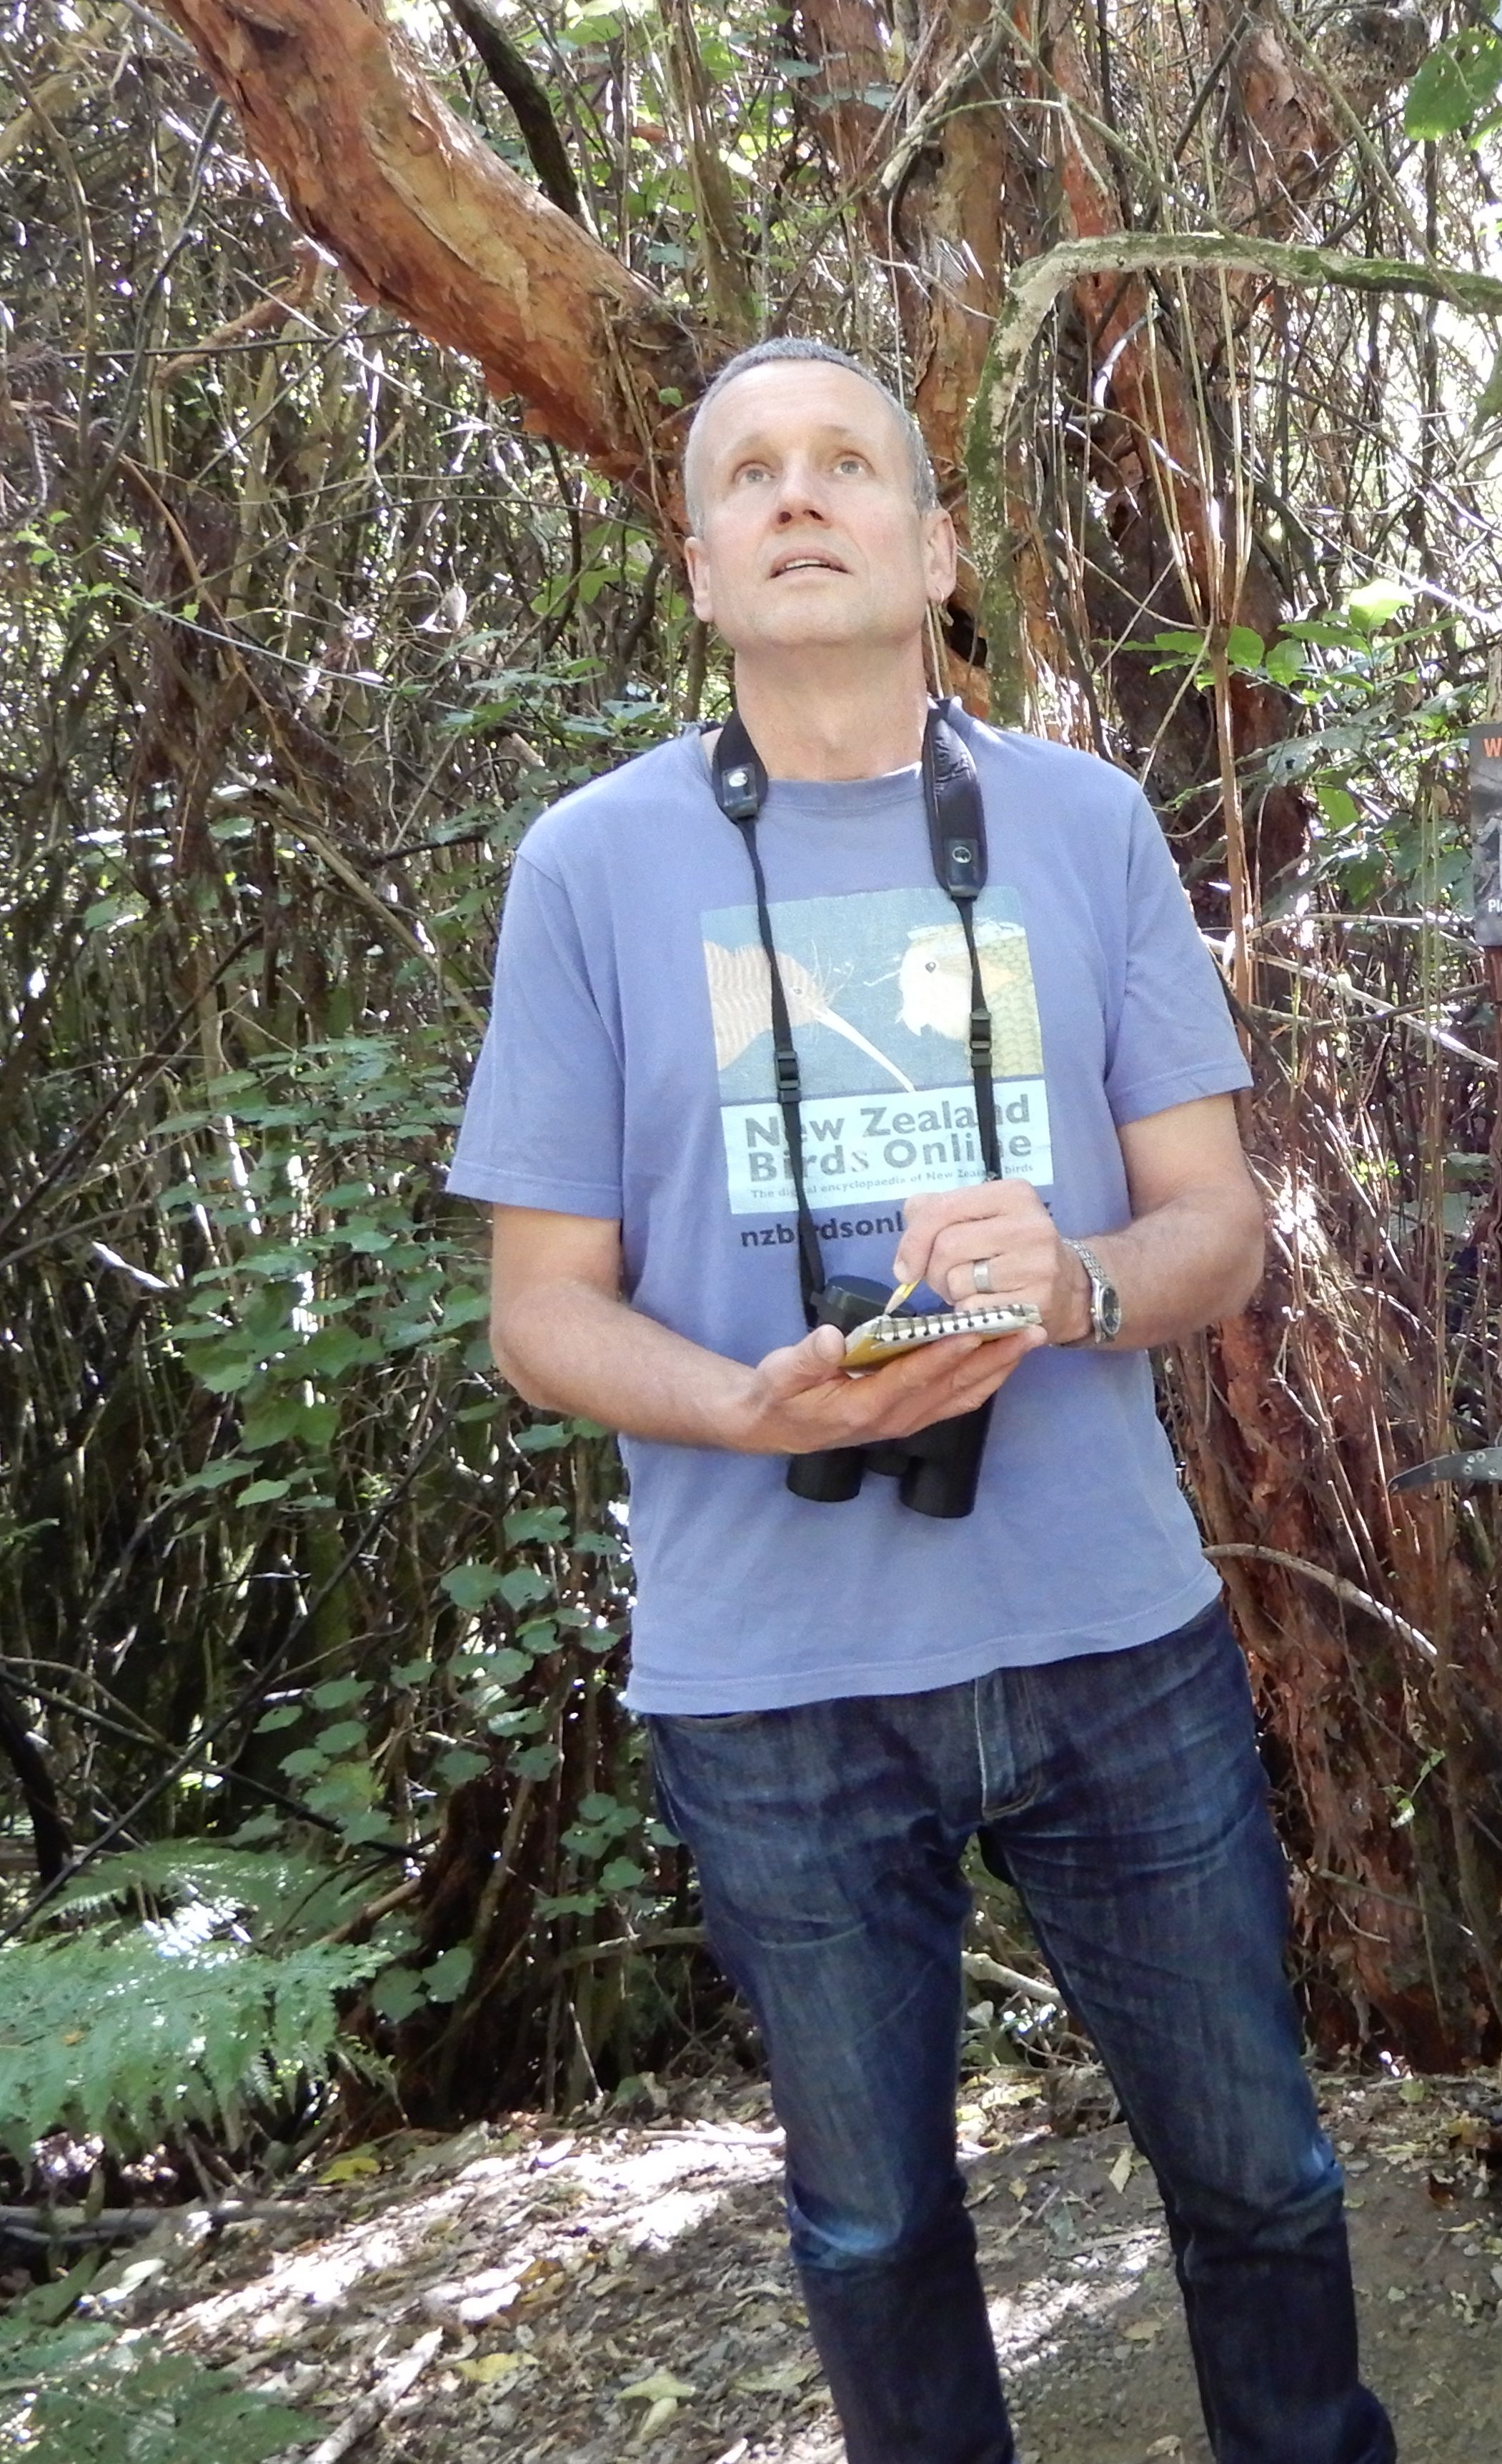 Man in blue tshirt and jeans looking up into trees holding a notebook and wearing binoculars